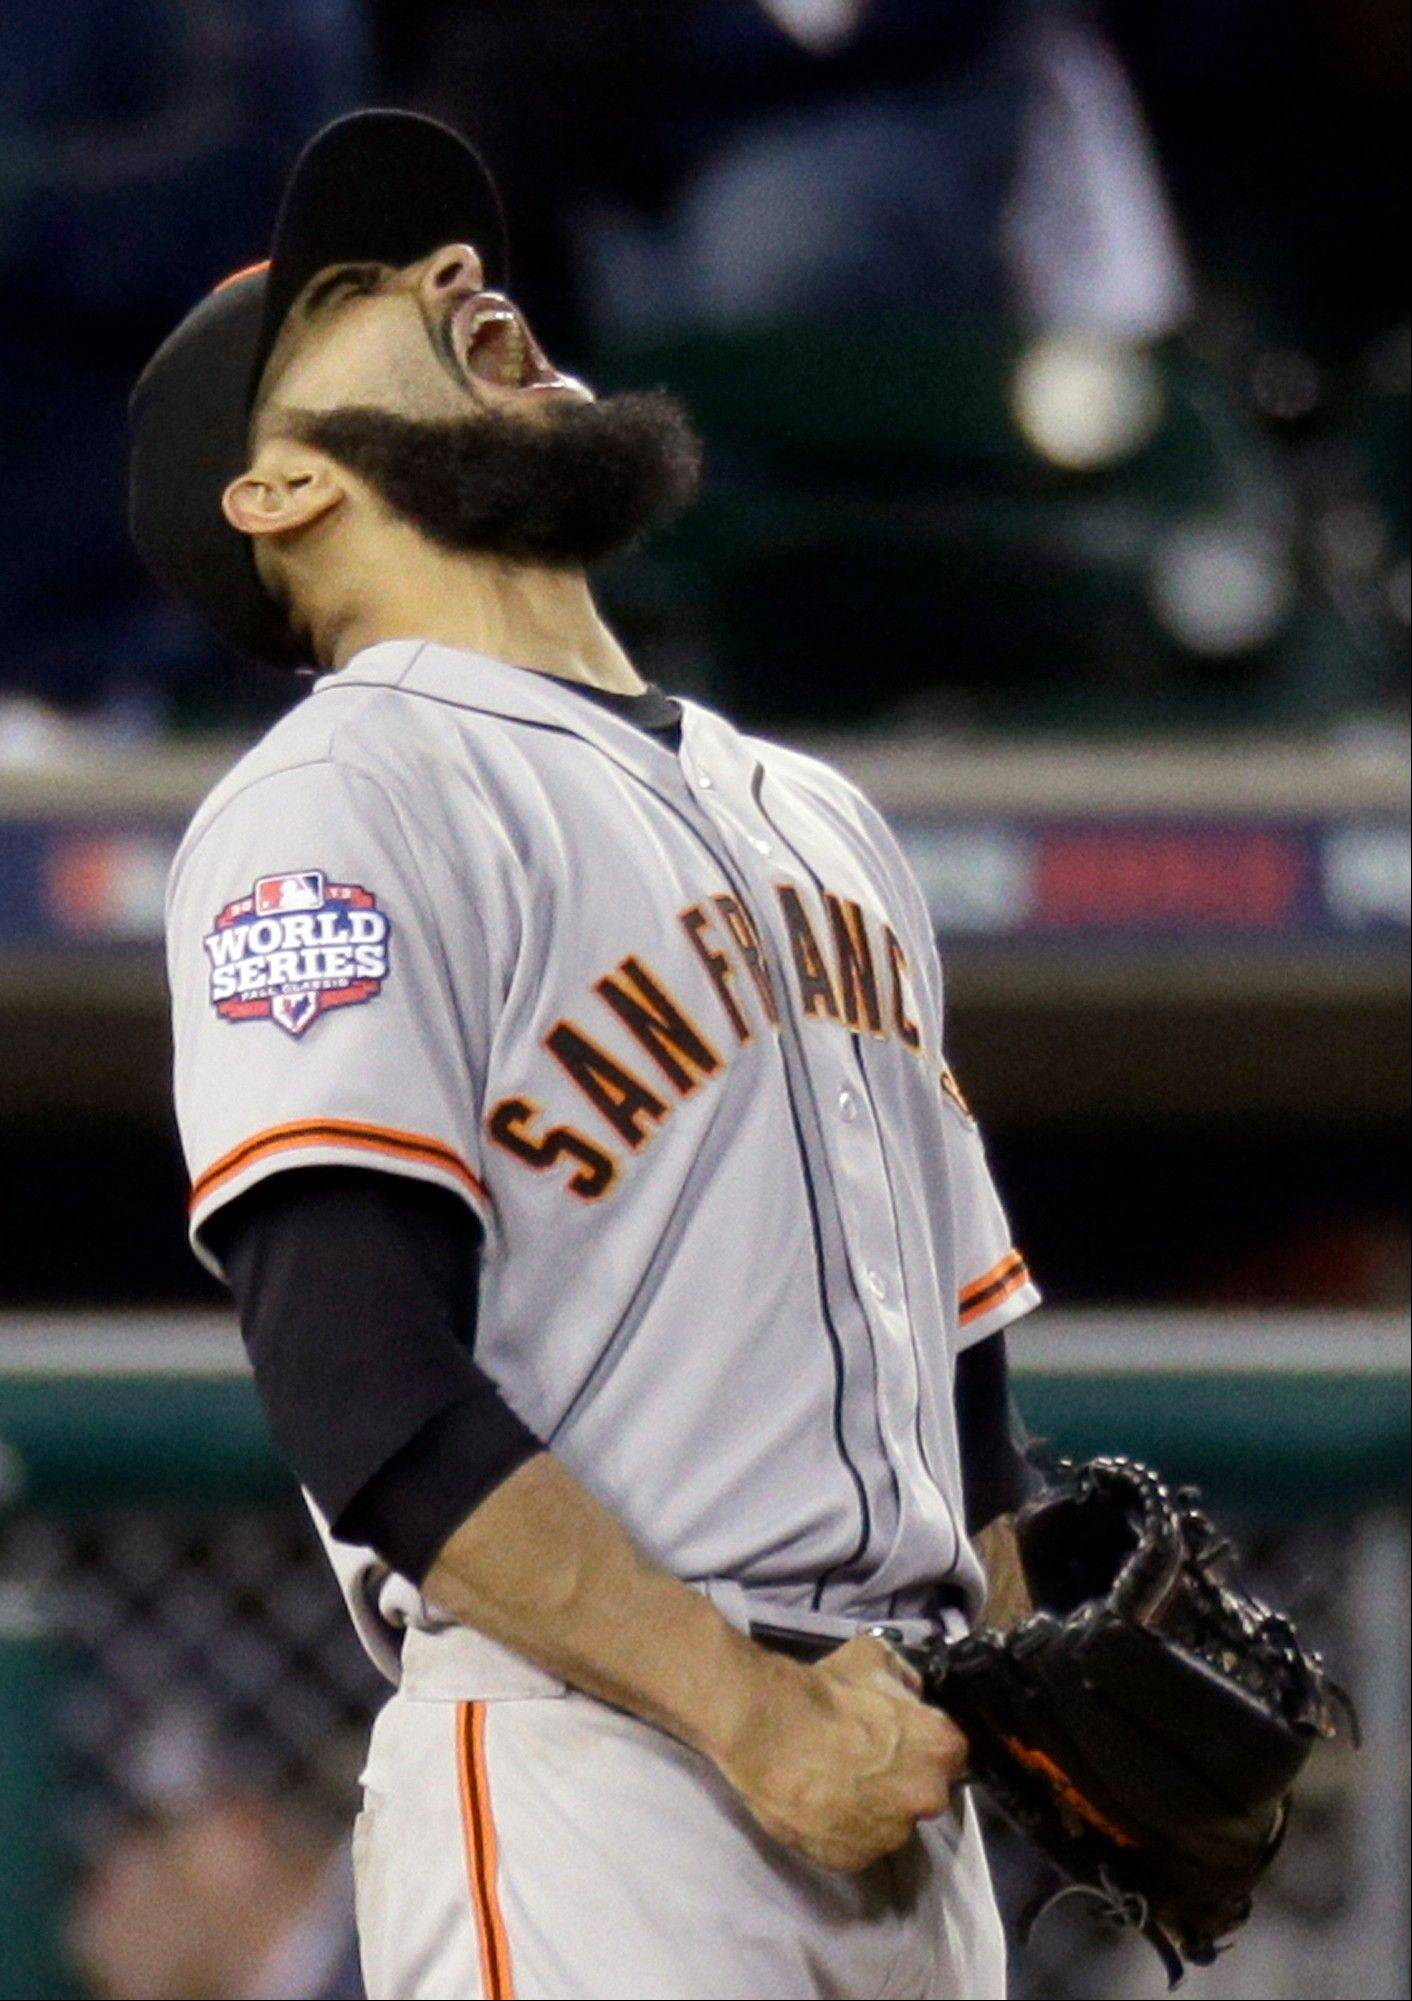 San Francisco Giants relief pitcher Sergio Romo celebrates after San Francisco Giants beat Detroit Tigers 2-0 in Game 3 of baseball's World Series Saturday, Oct. 27, 2012, in Detroit. The Giants lead the series 3-0.